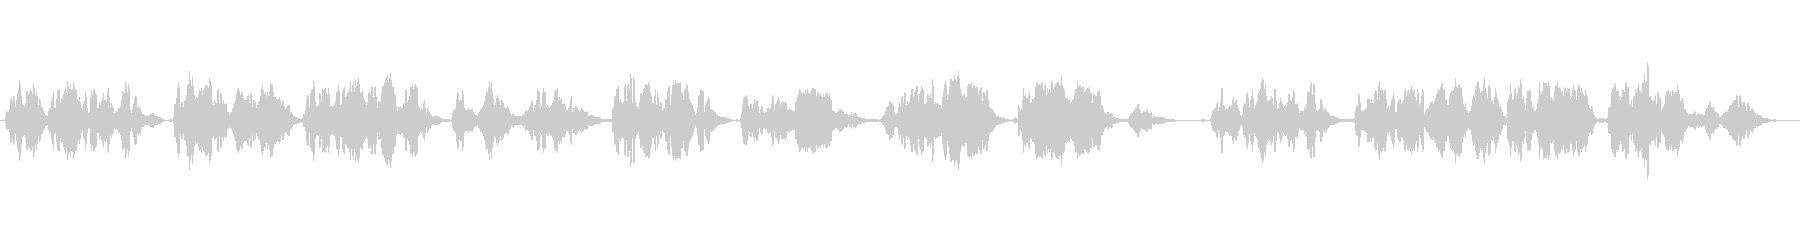 A classical flute solo song with melancholy's unreproduced waveform